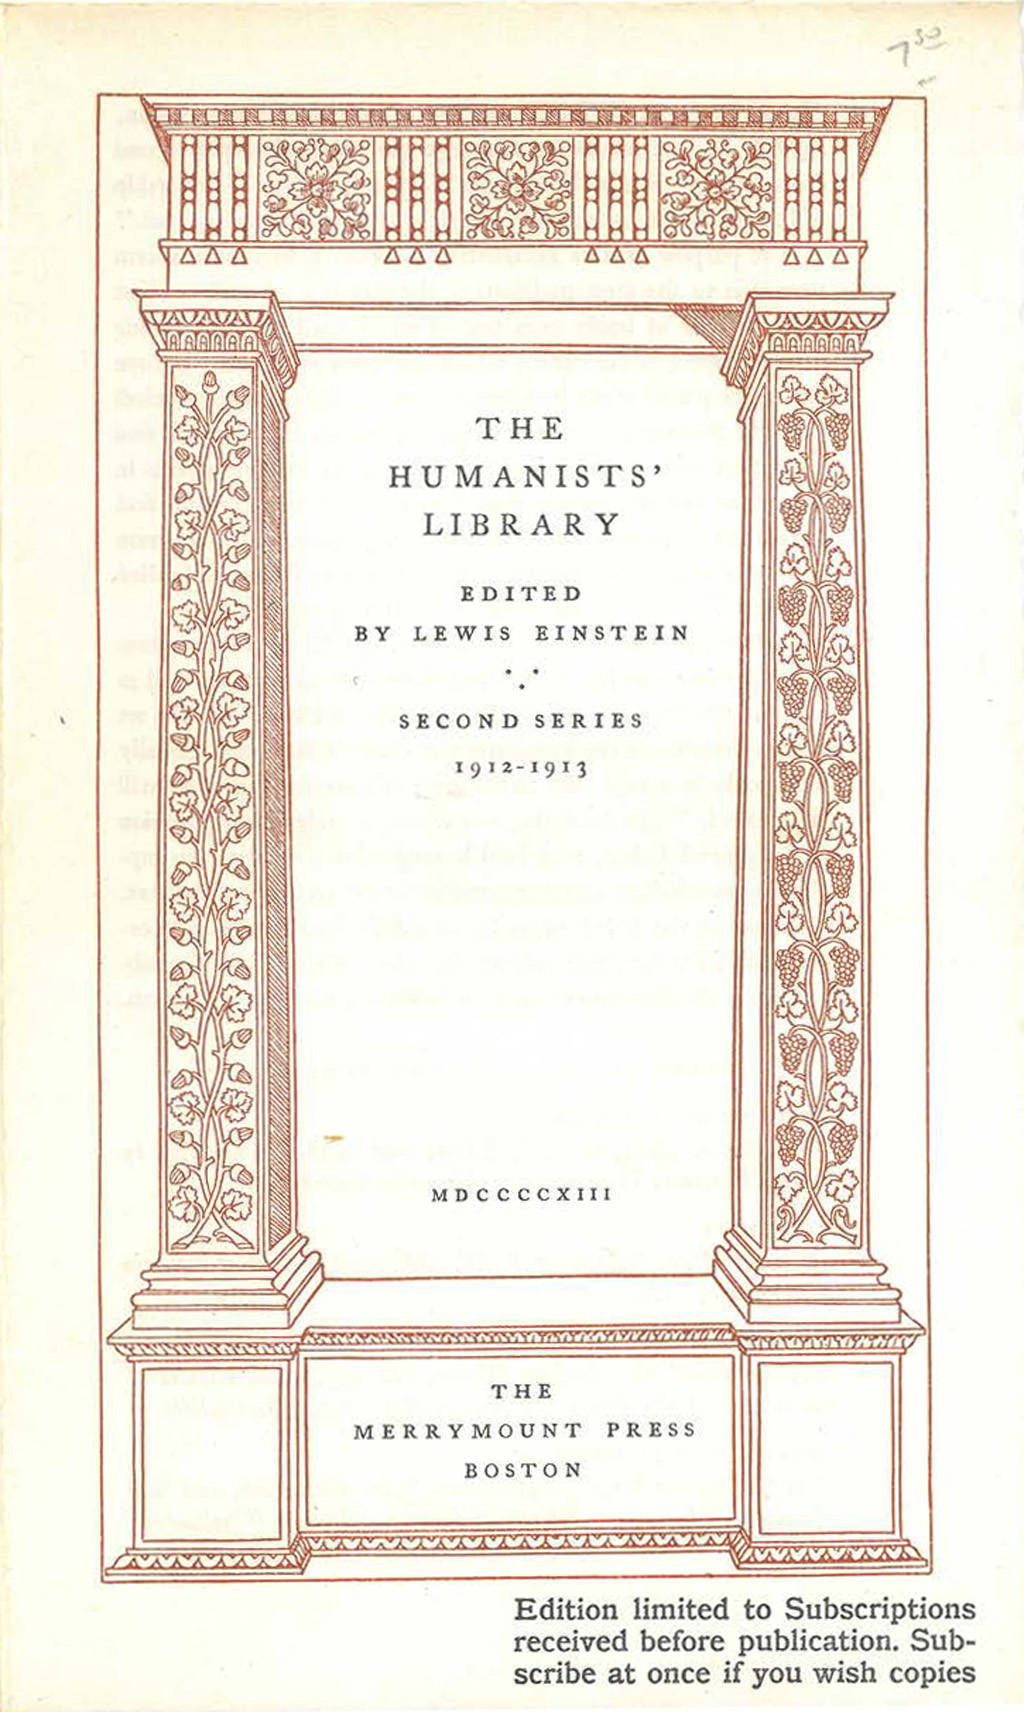 Circular for The Humanists' Library Second Series 1912–1913 (1913). Illustration by W.A. Dwiggins; typography by D.B. Updike; printing by The Merrymount Press/